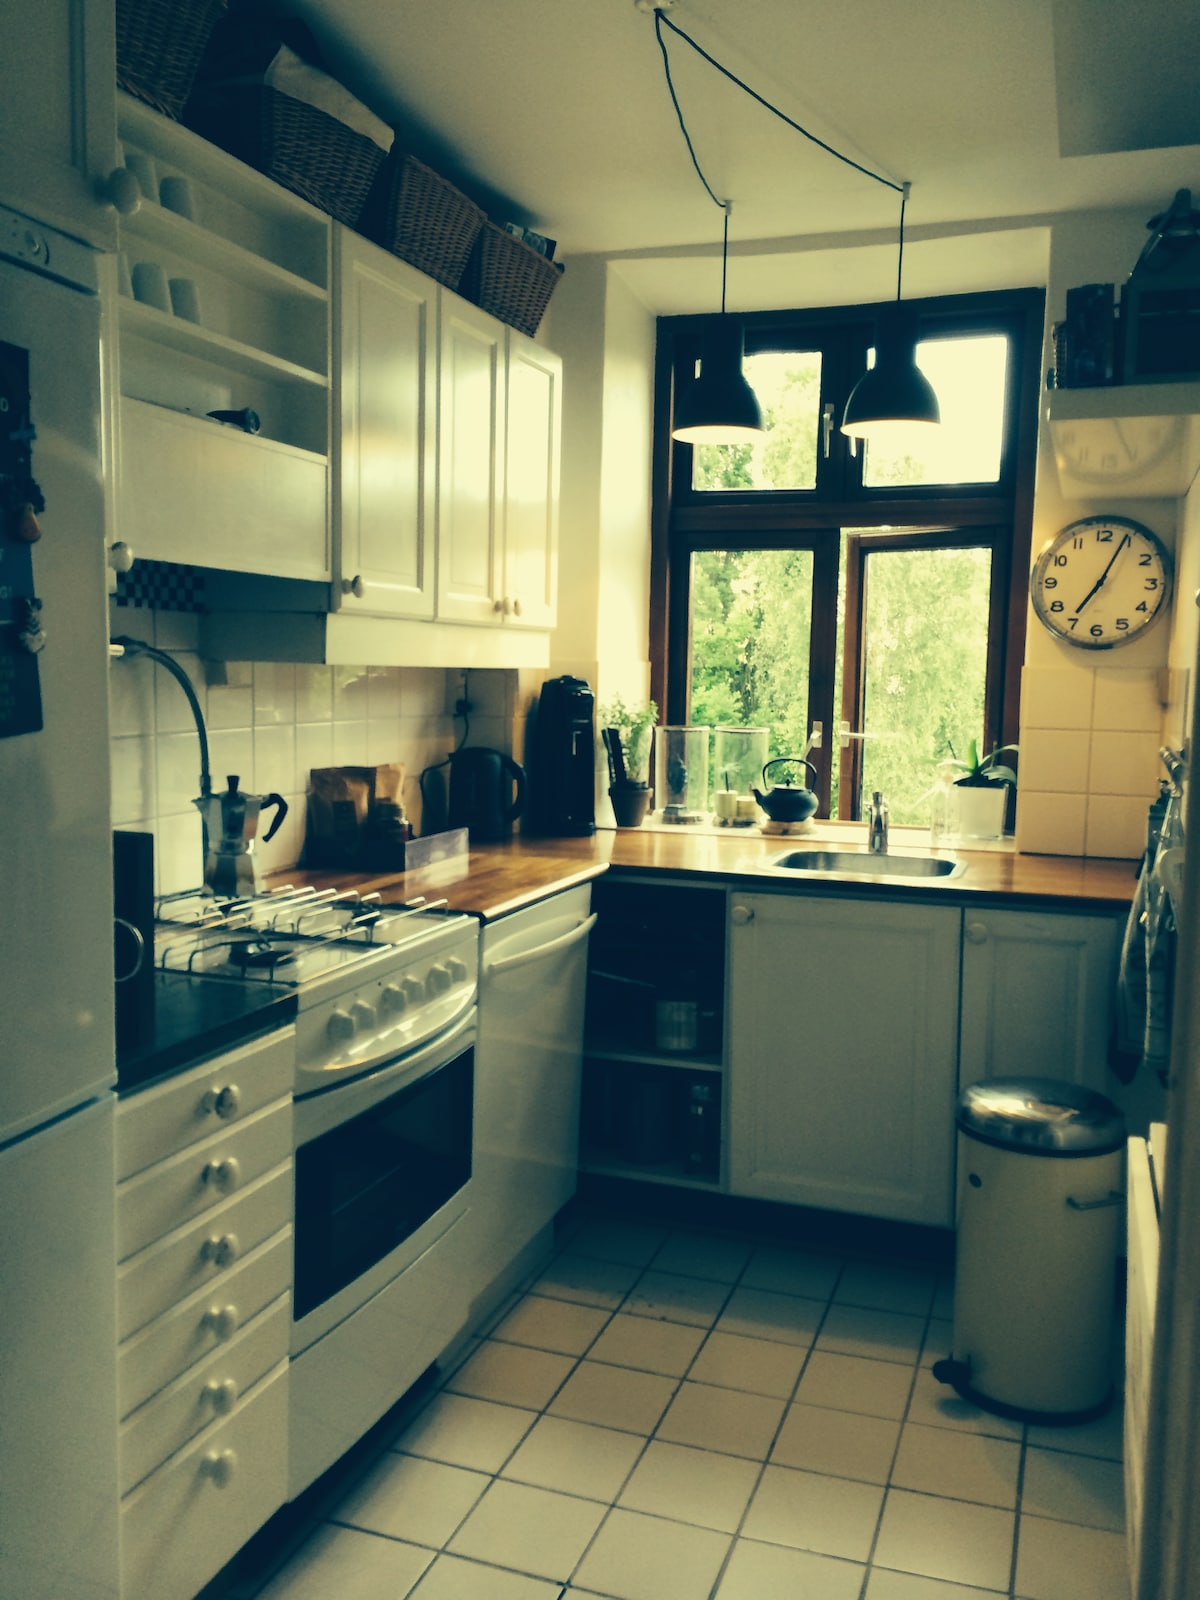 Nice and functional kitchen with a view of the beautiful garden. Dishwasher fridge freezer gas stove and oven.